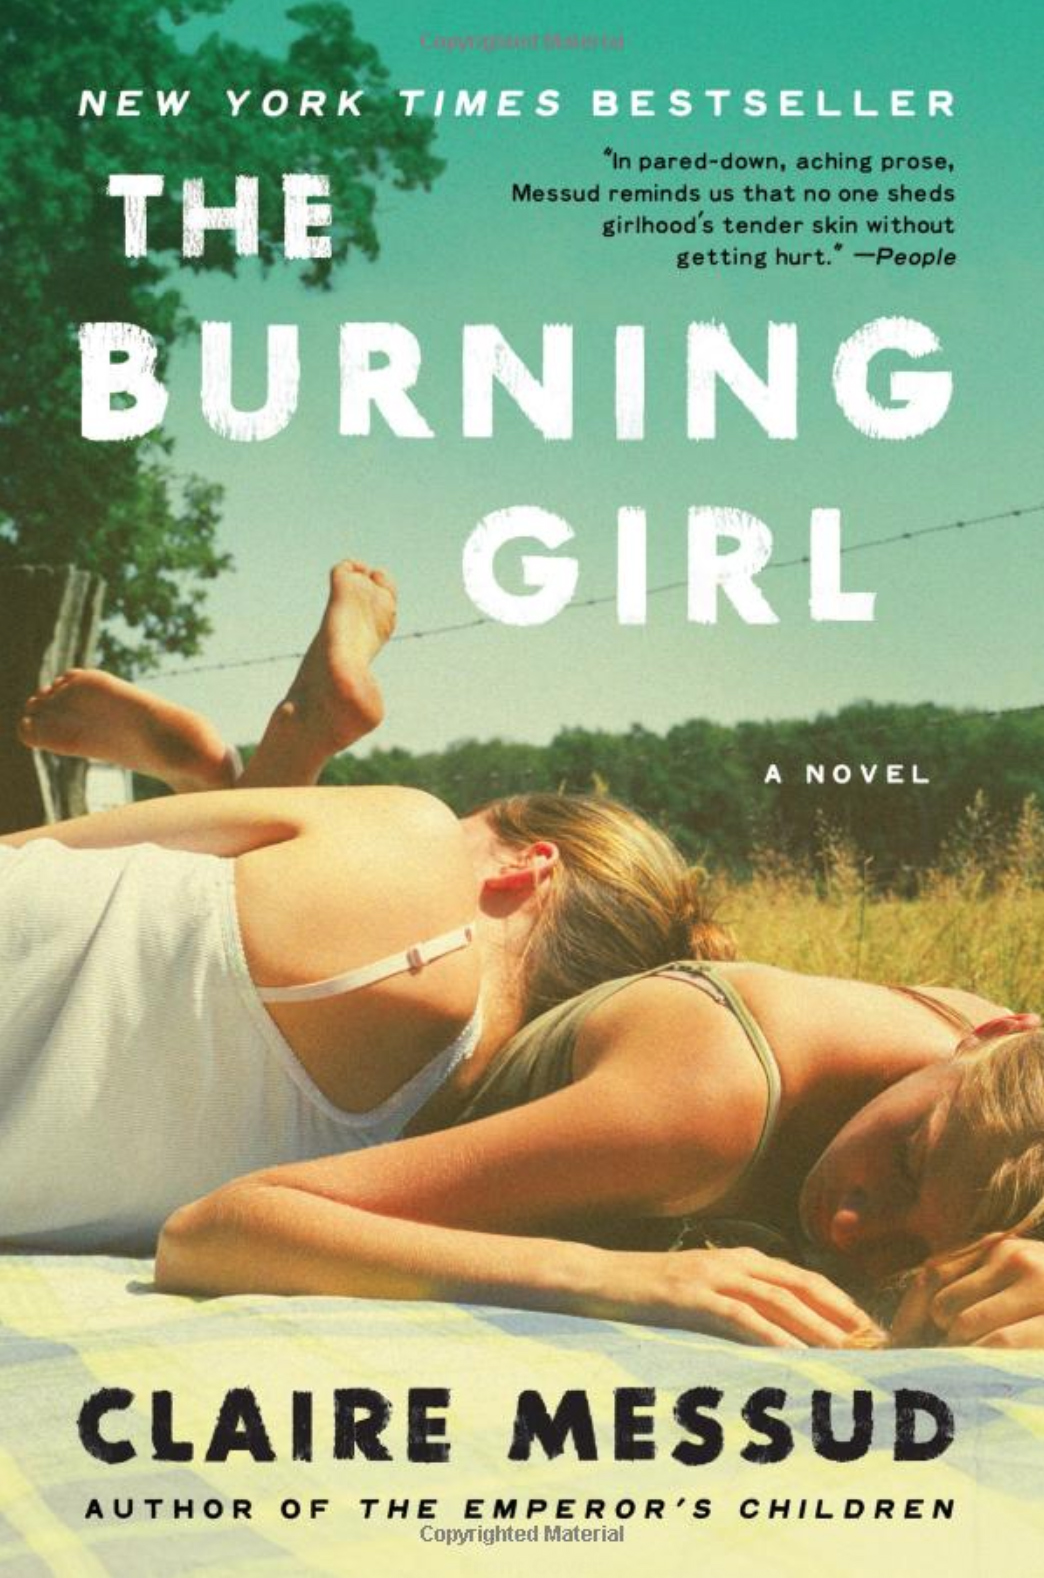 kathleen stone writer booklab literary salon the burning girl claire messud